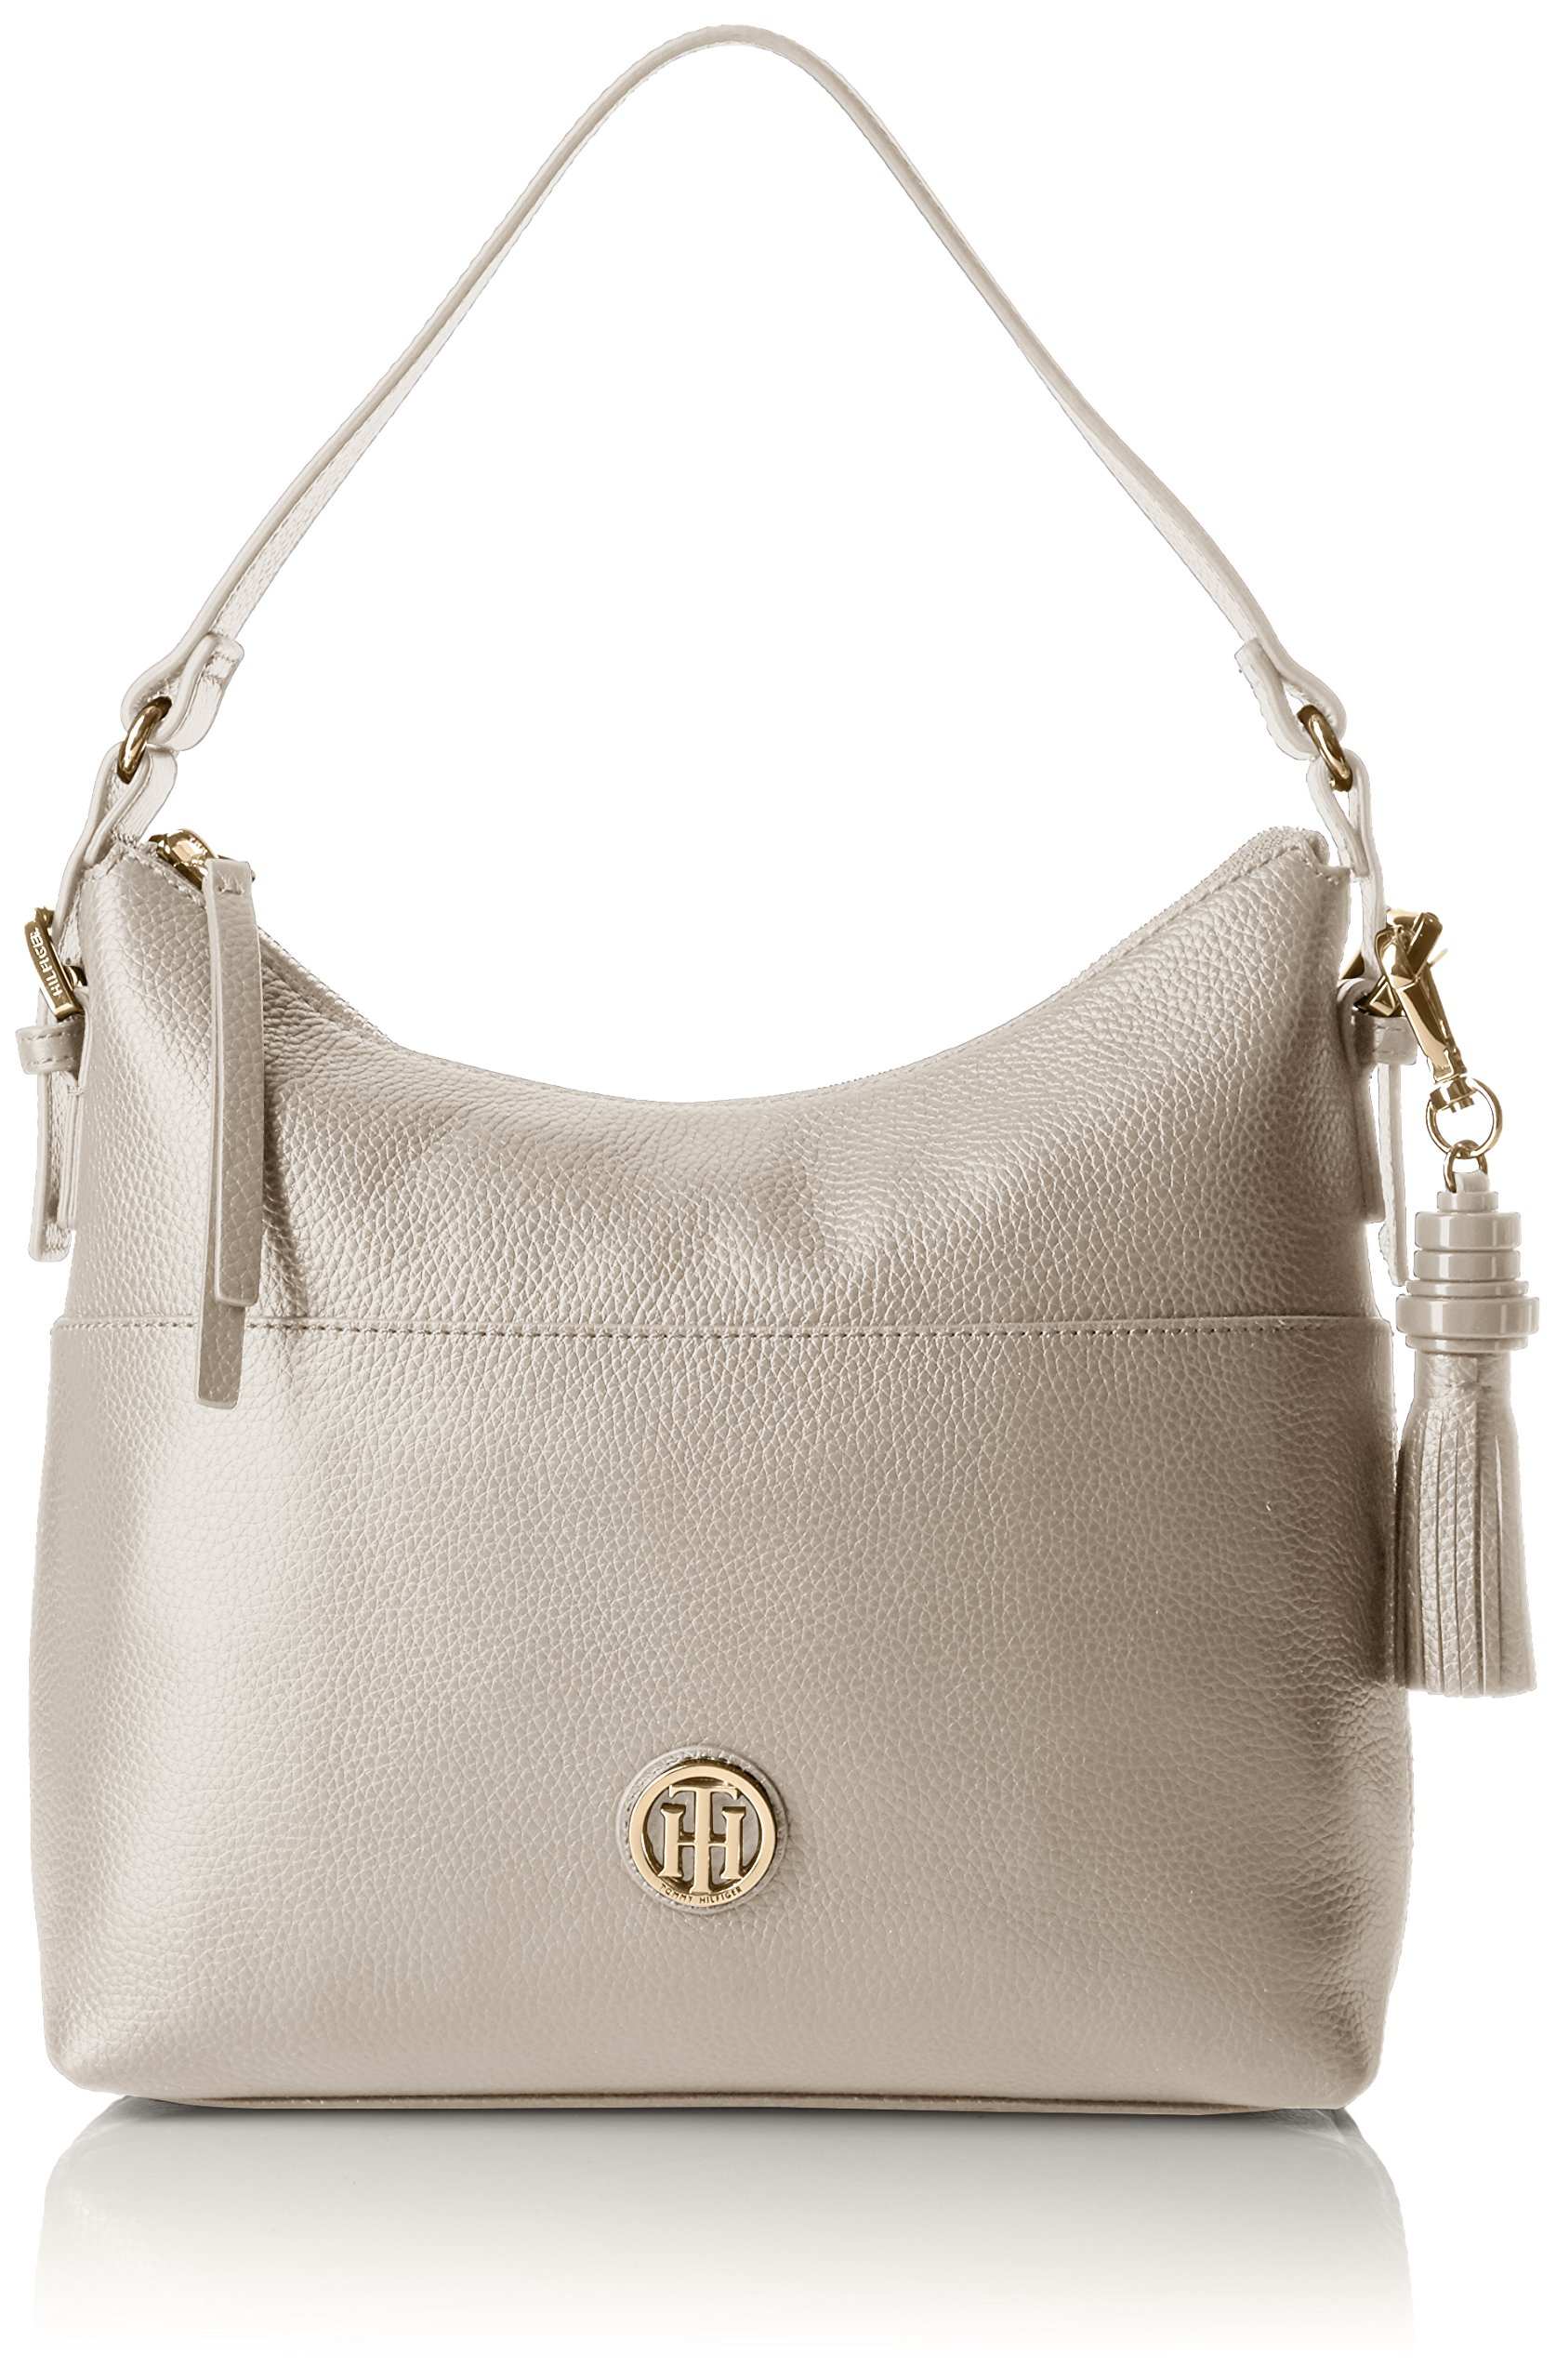 Tommy Hilfiger Purse for Women TH Summer of Love Hobo, Oatmeal by Tommy Hilfiger (Image #1)